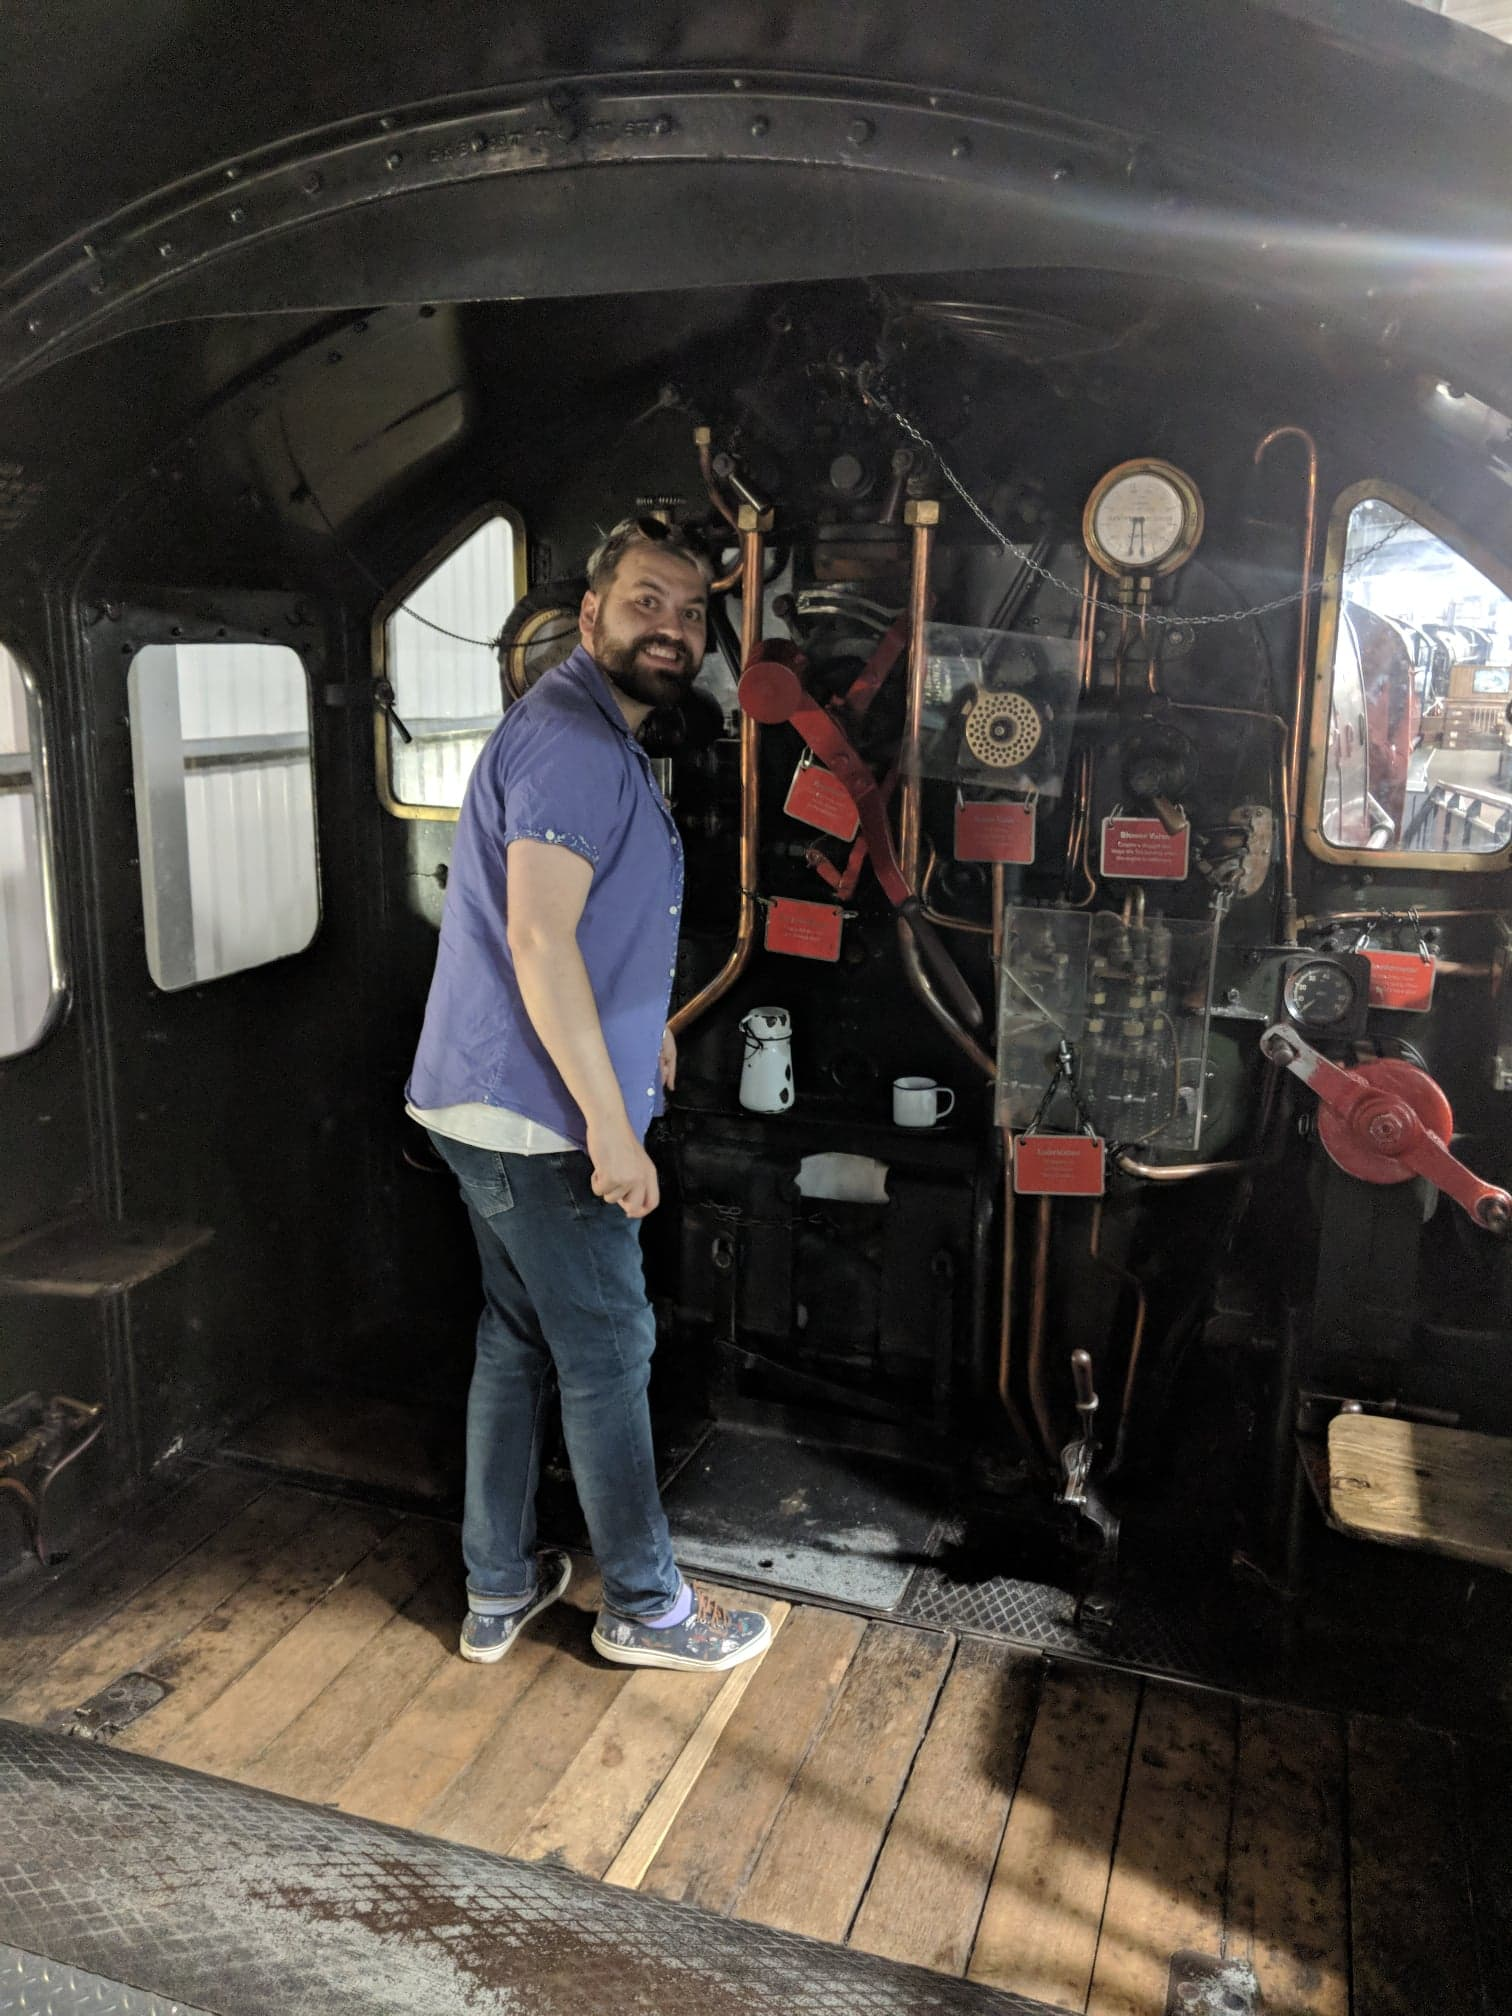 Stepping up to the footplate in The Engine House. This obsession with steam trains must be catching.